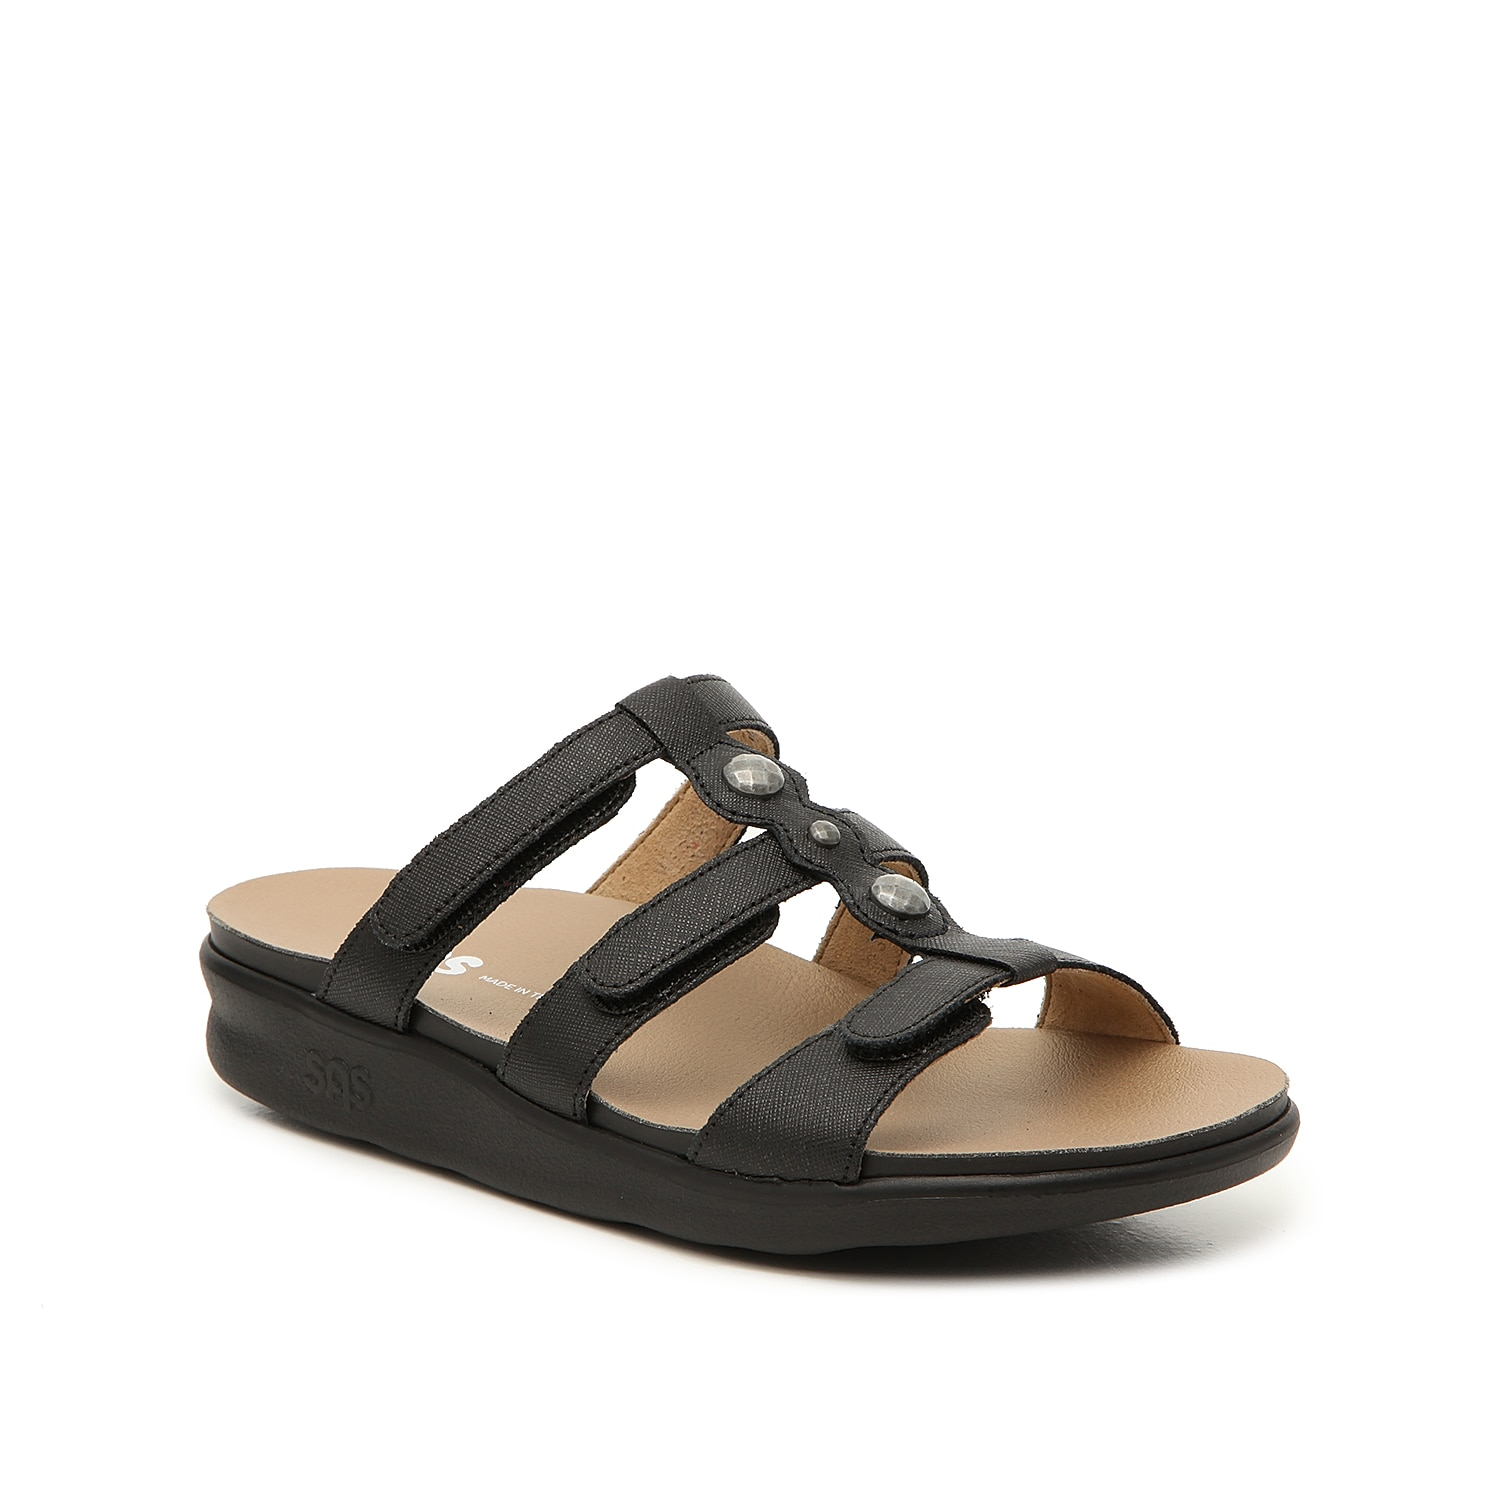 Get all the support you need and more with the Napoli wedge sandal from Sas. TheTripad® footbed is designed to cushion the three pressure points of your foot: the inside ball, outside ball, and the heel.